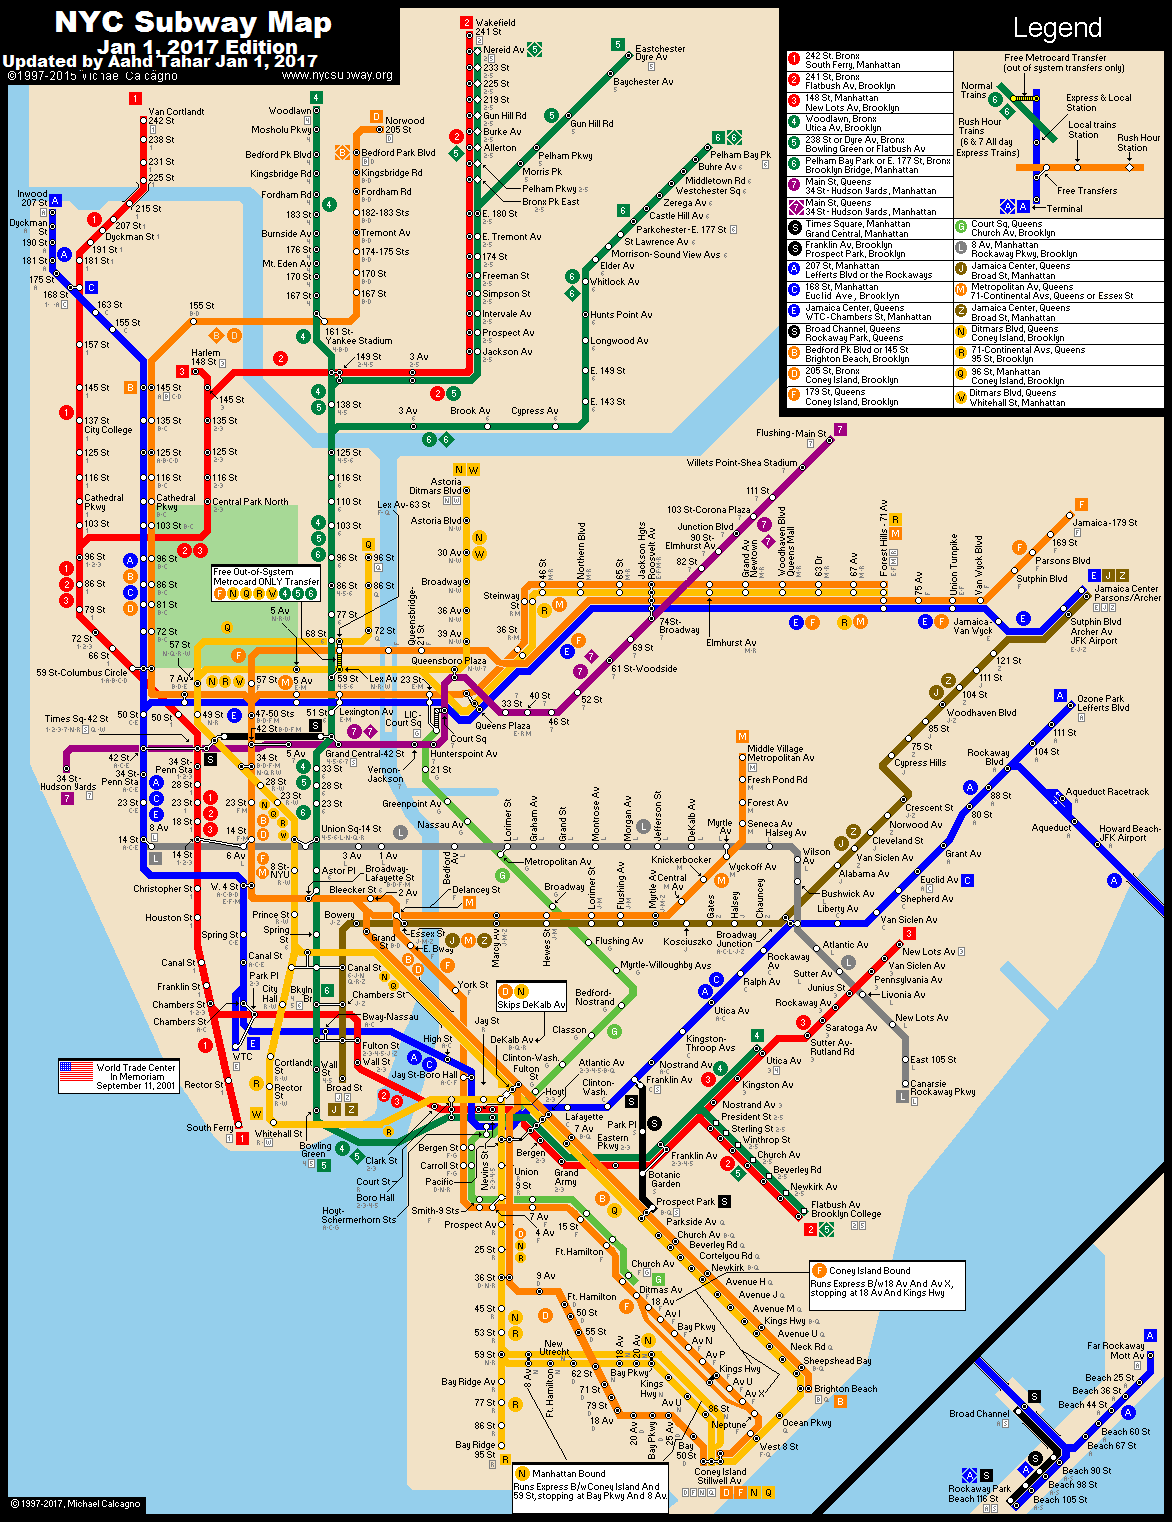 New York City Subway Station Map